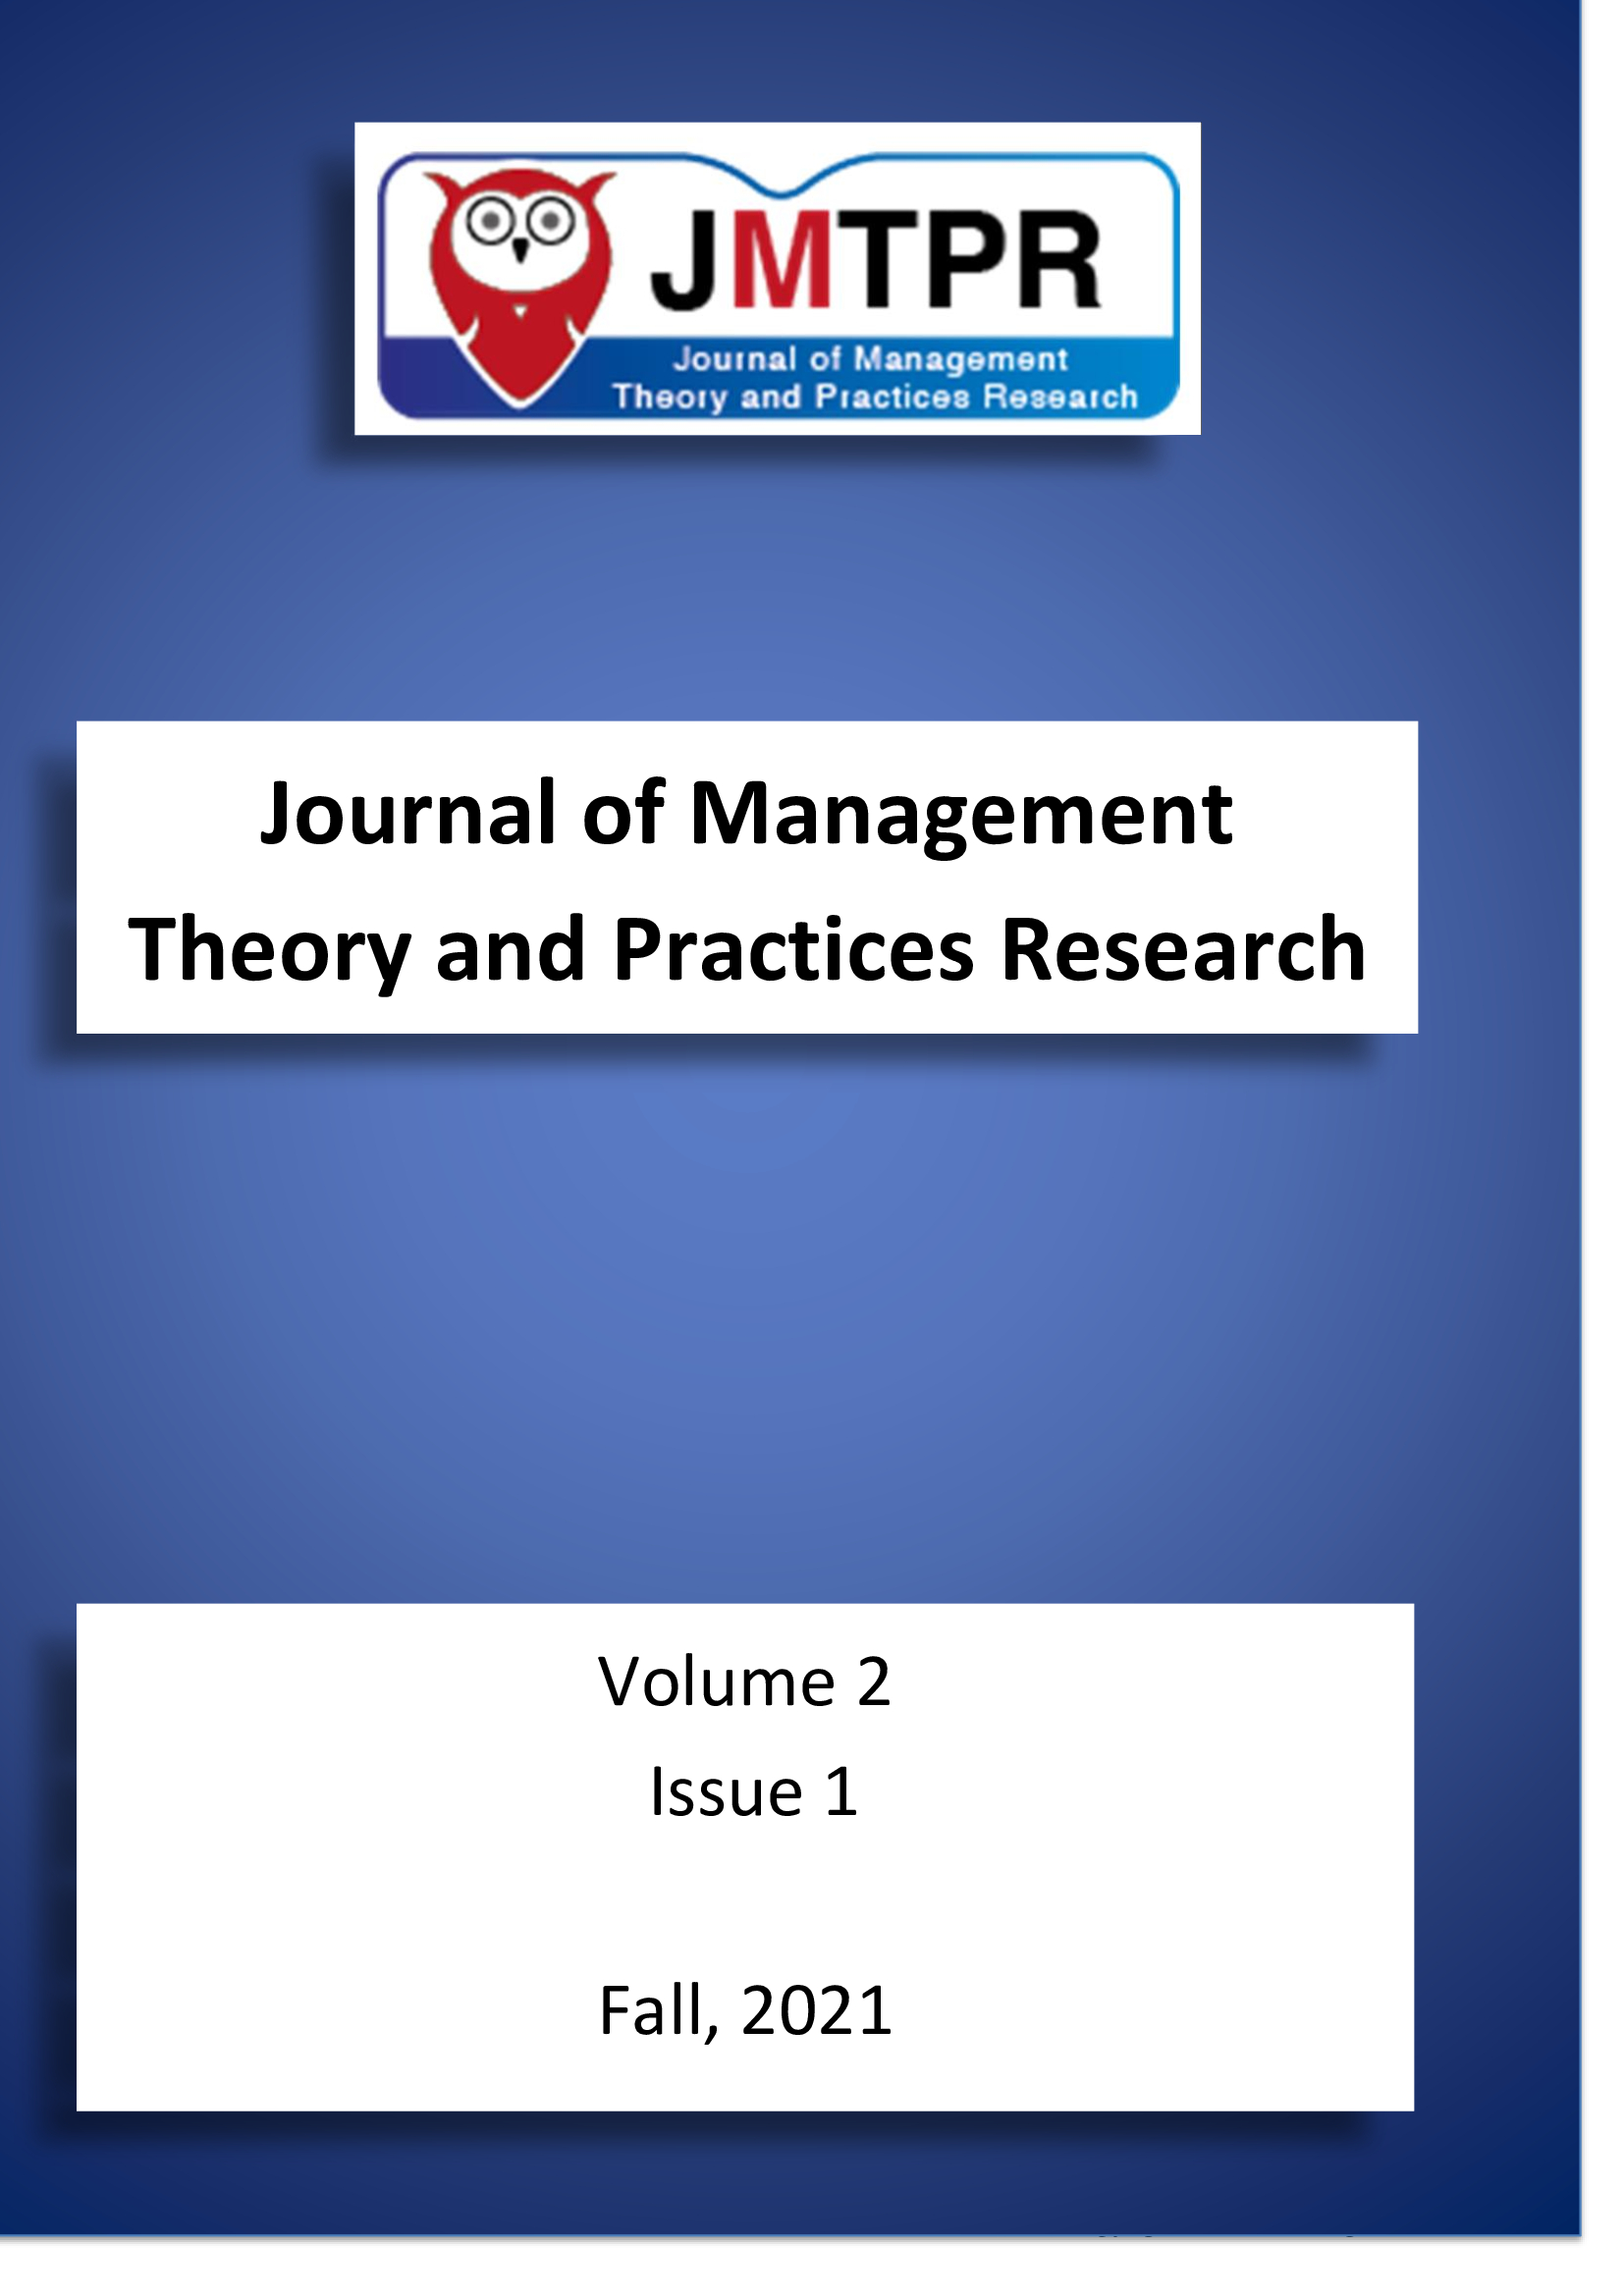 Journal of Management Theory and Practices Research